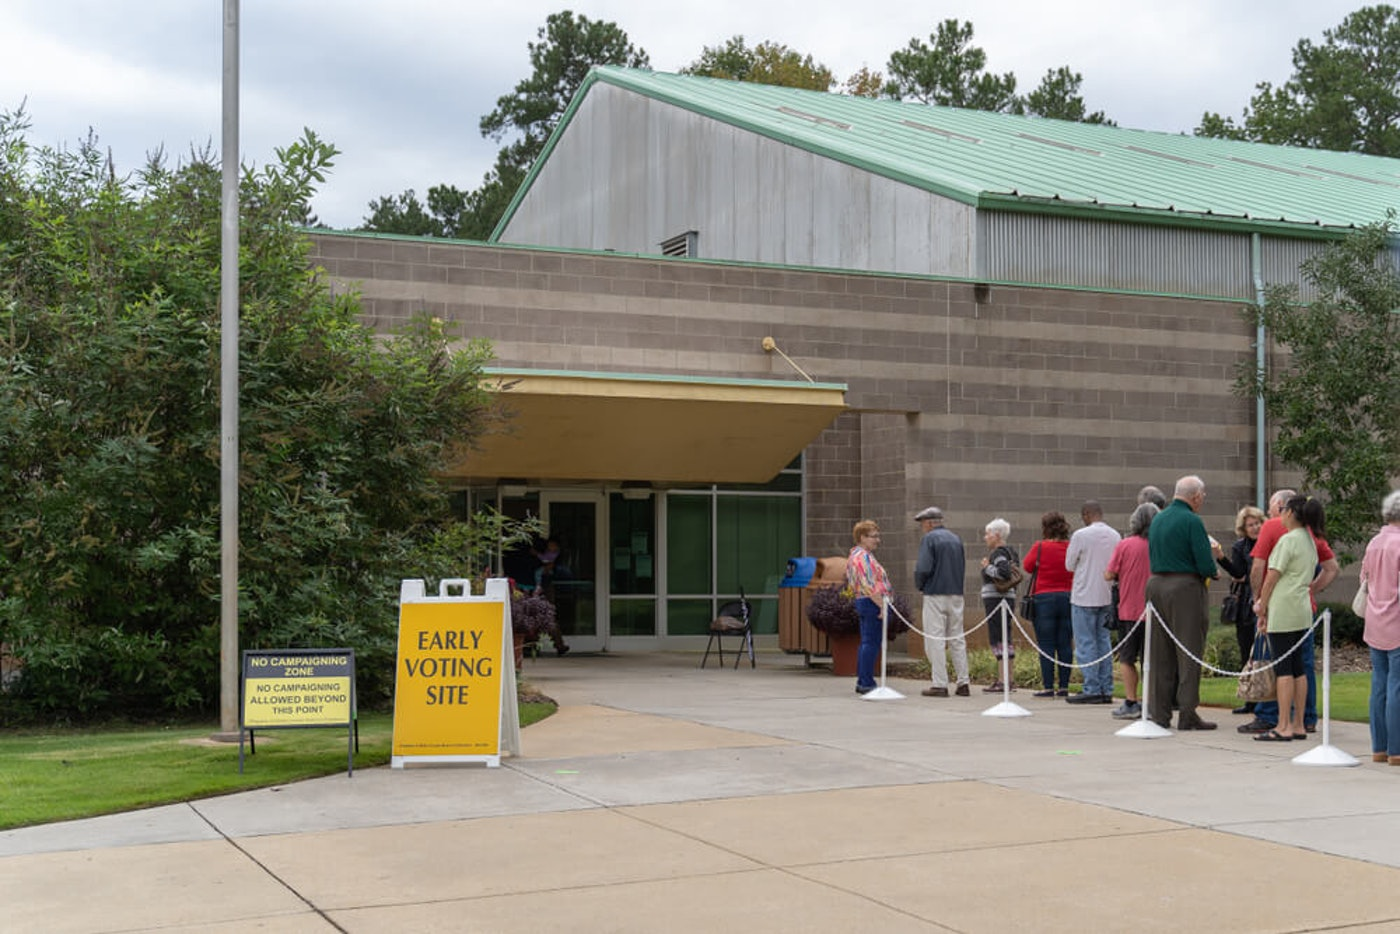 Skip the lines. Here's a step-by-step guide to voting by mail in North Carolina. (Image via Shutterstock)